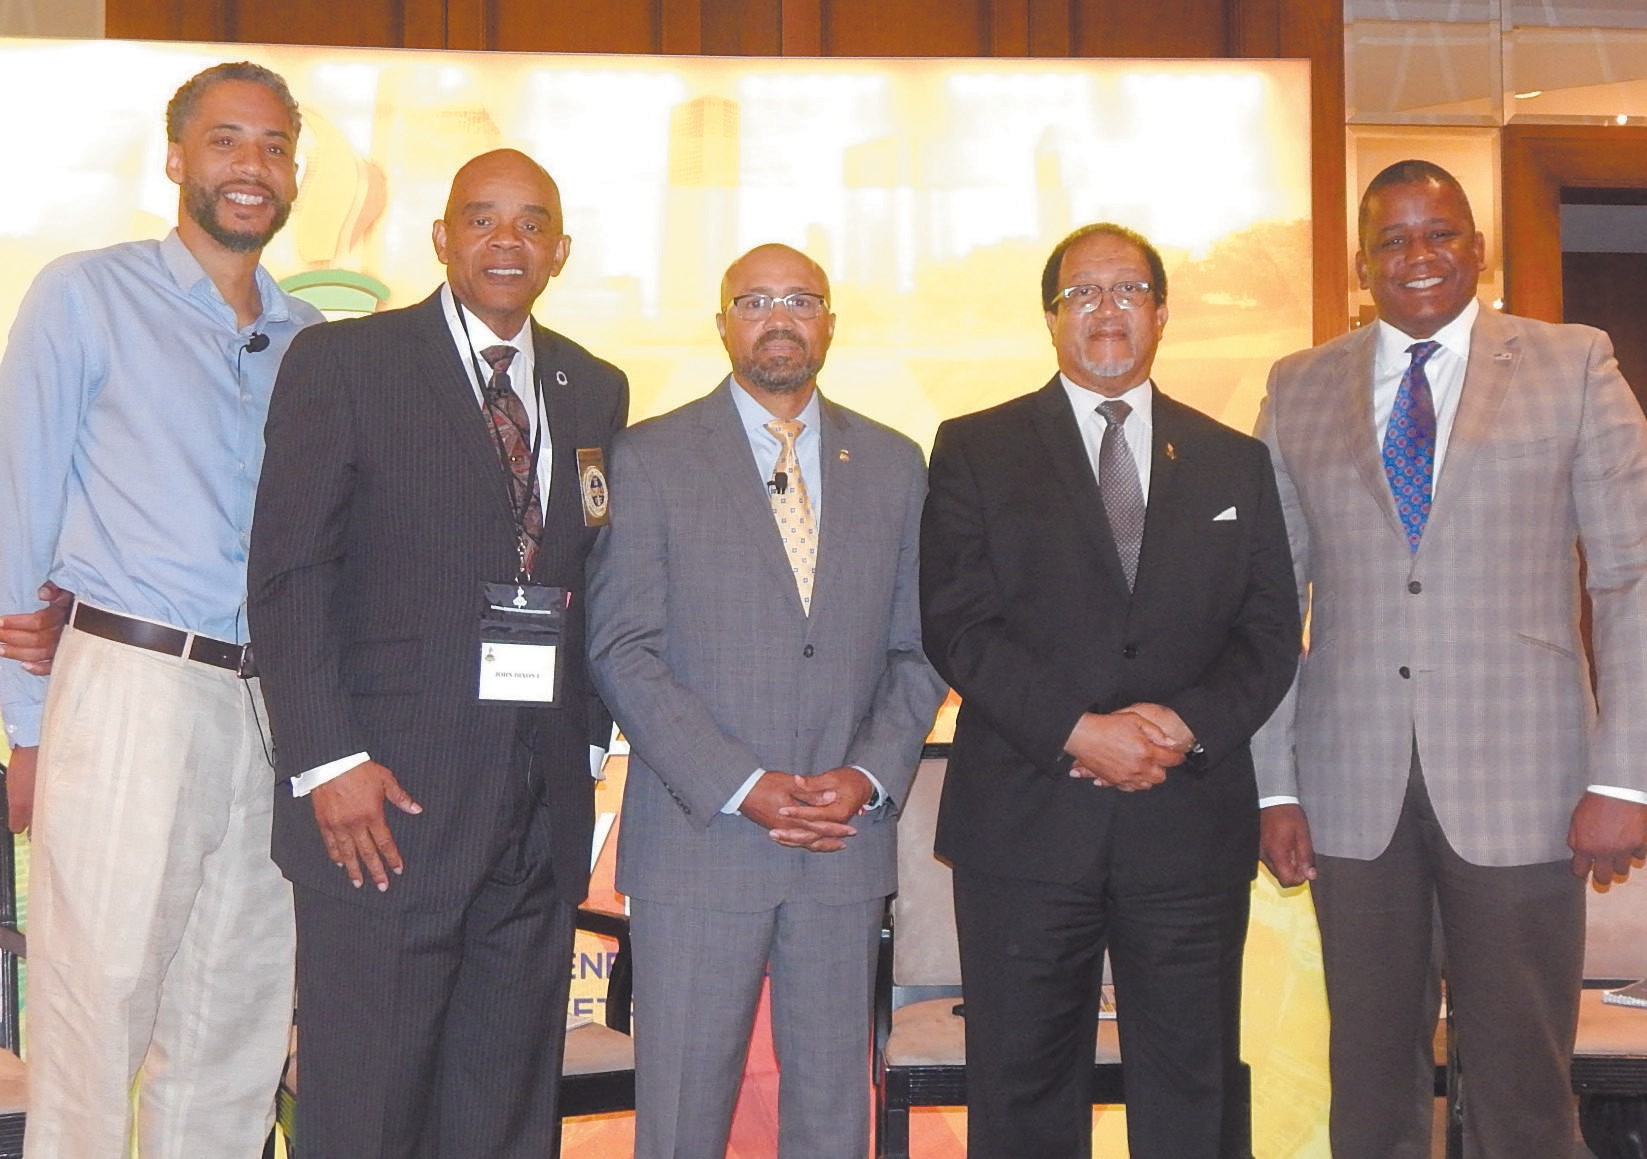 l-r: Art Way, Esq., John I. Dixon, III, Major Neill Franklin, Dr. Ben Chavis and Former Congressman Kendrick Meek